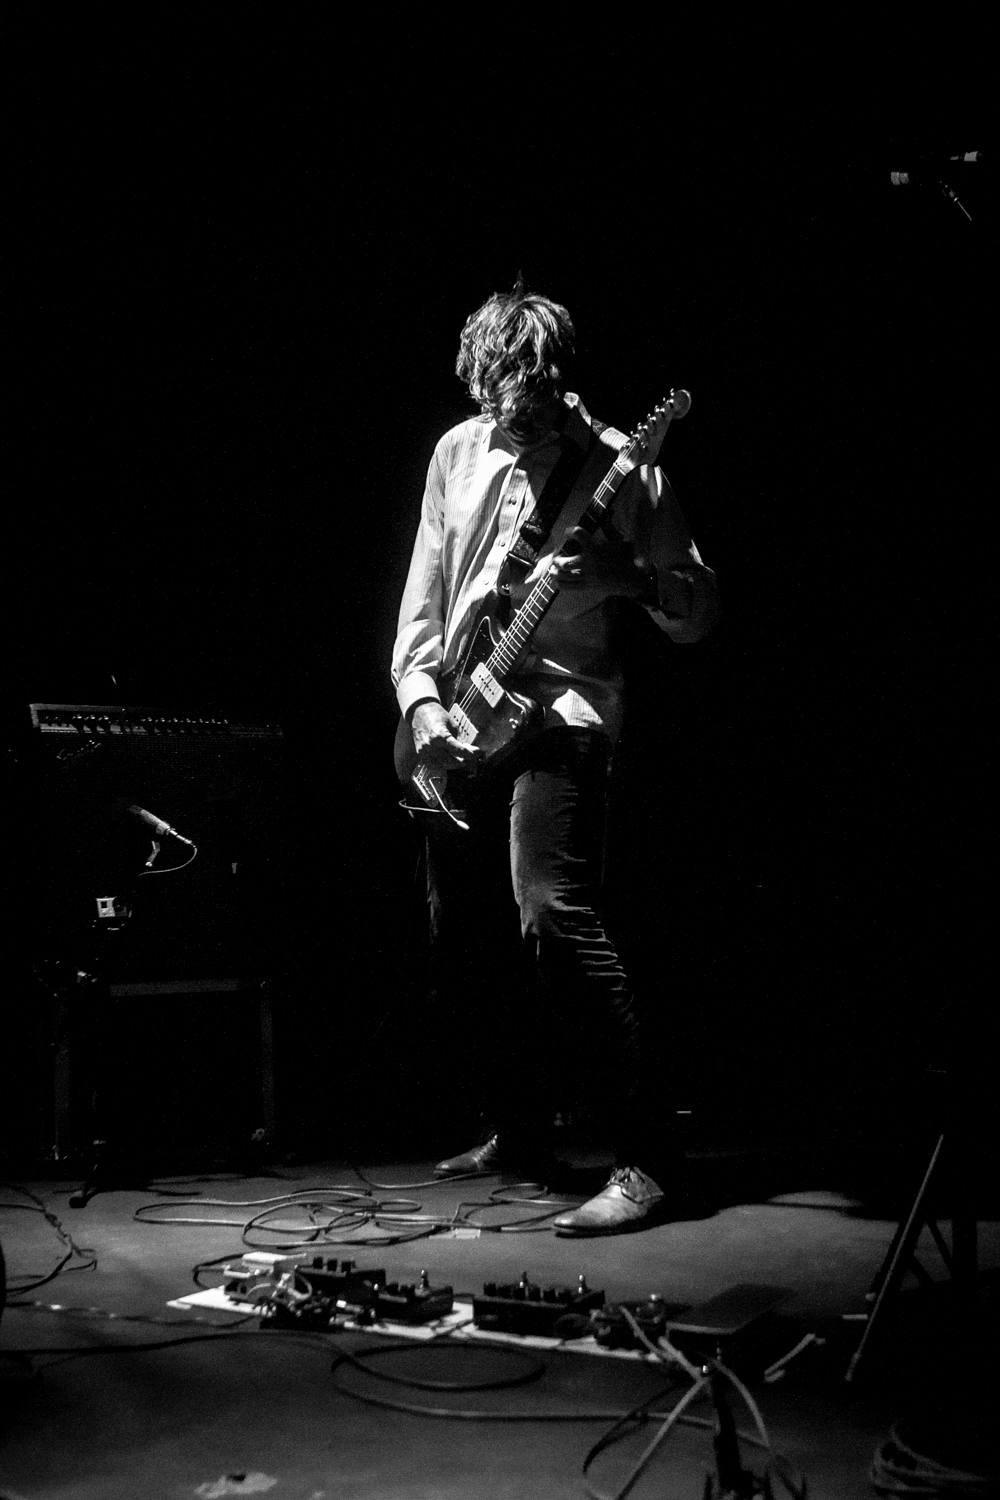 04. Thurston Moore (SONIC YOUTH)